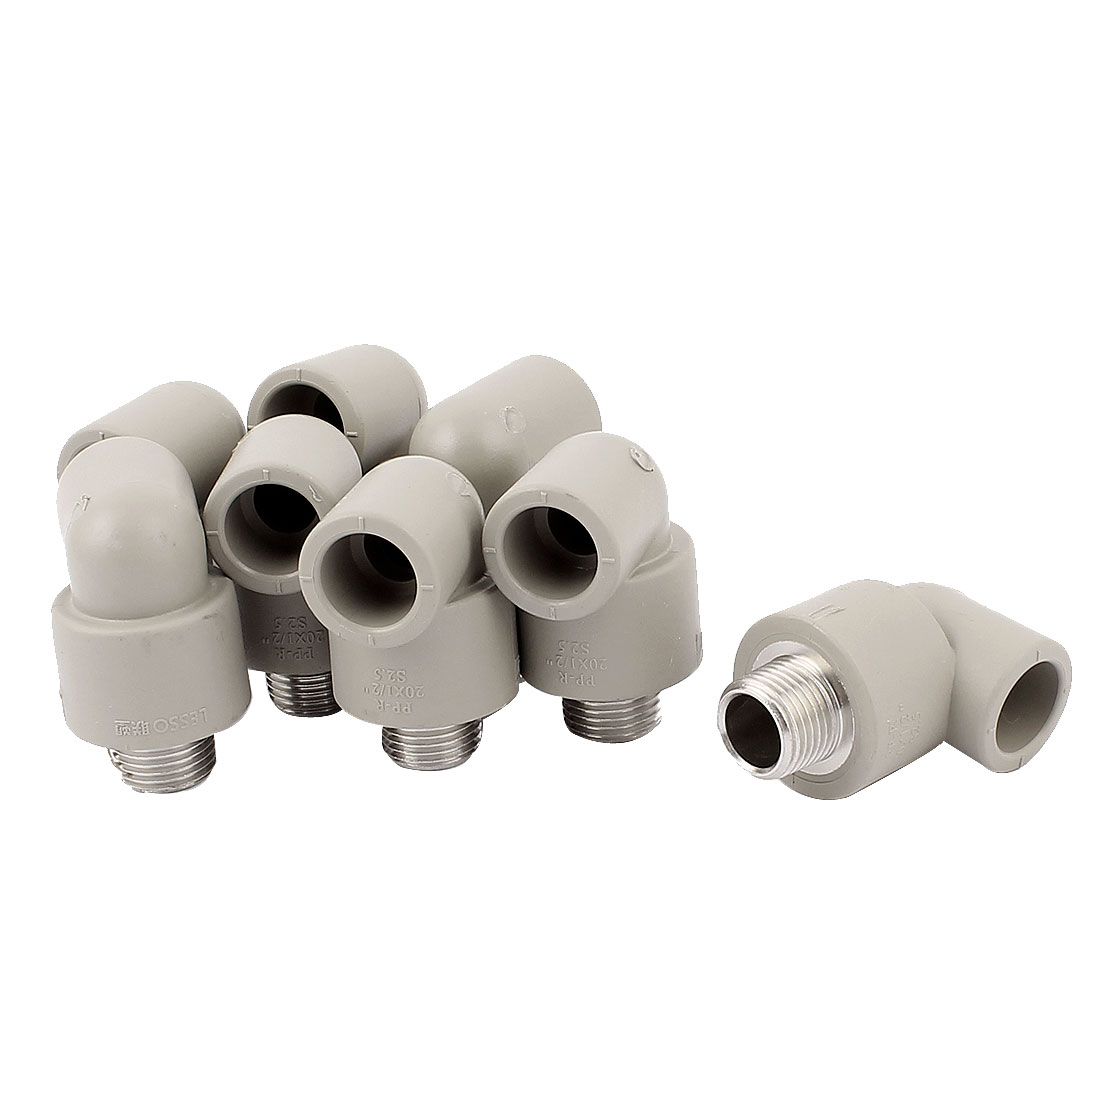 1/2BSP 90 Degree Elbow PPR Pipe Fittings Adapter Connector 8pcs